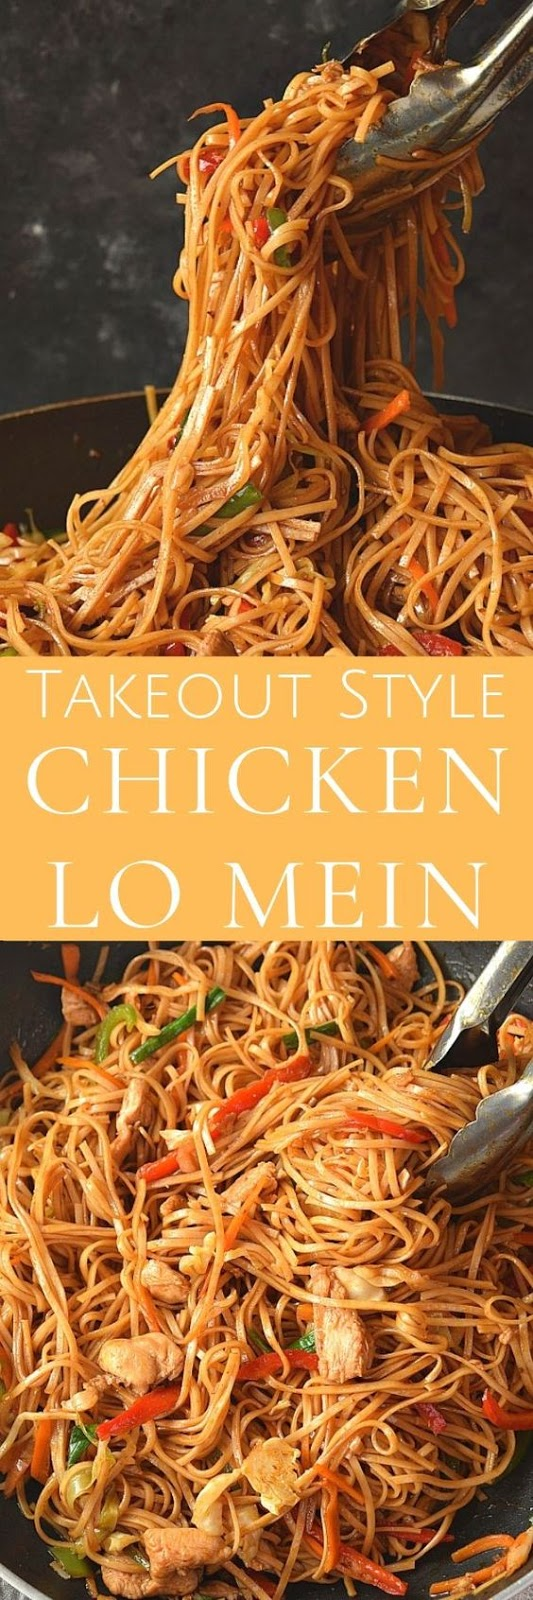 Best ever Chicken Lo Mein you must have tried at home! #savorybitesrecipes #chickenlomein #lomeinrecipe #easyrecipe #dinnerrecipes #chinesefood